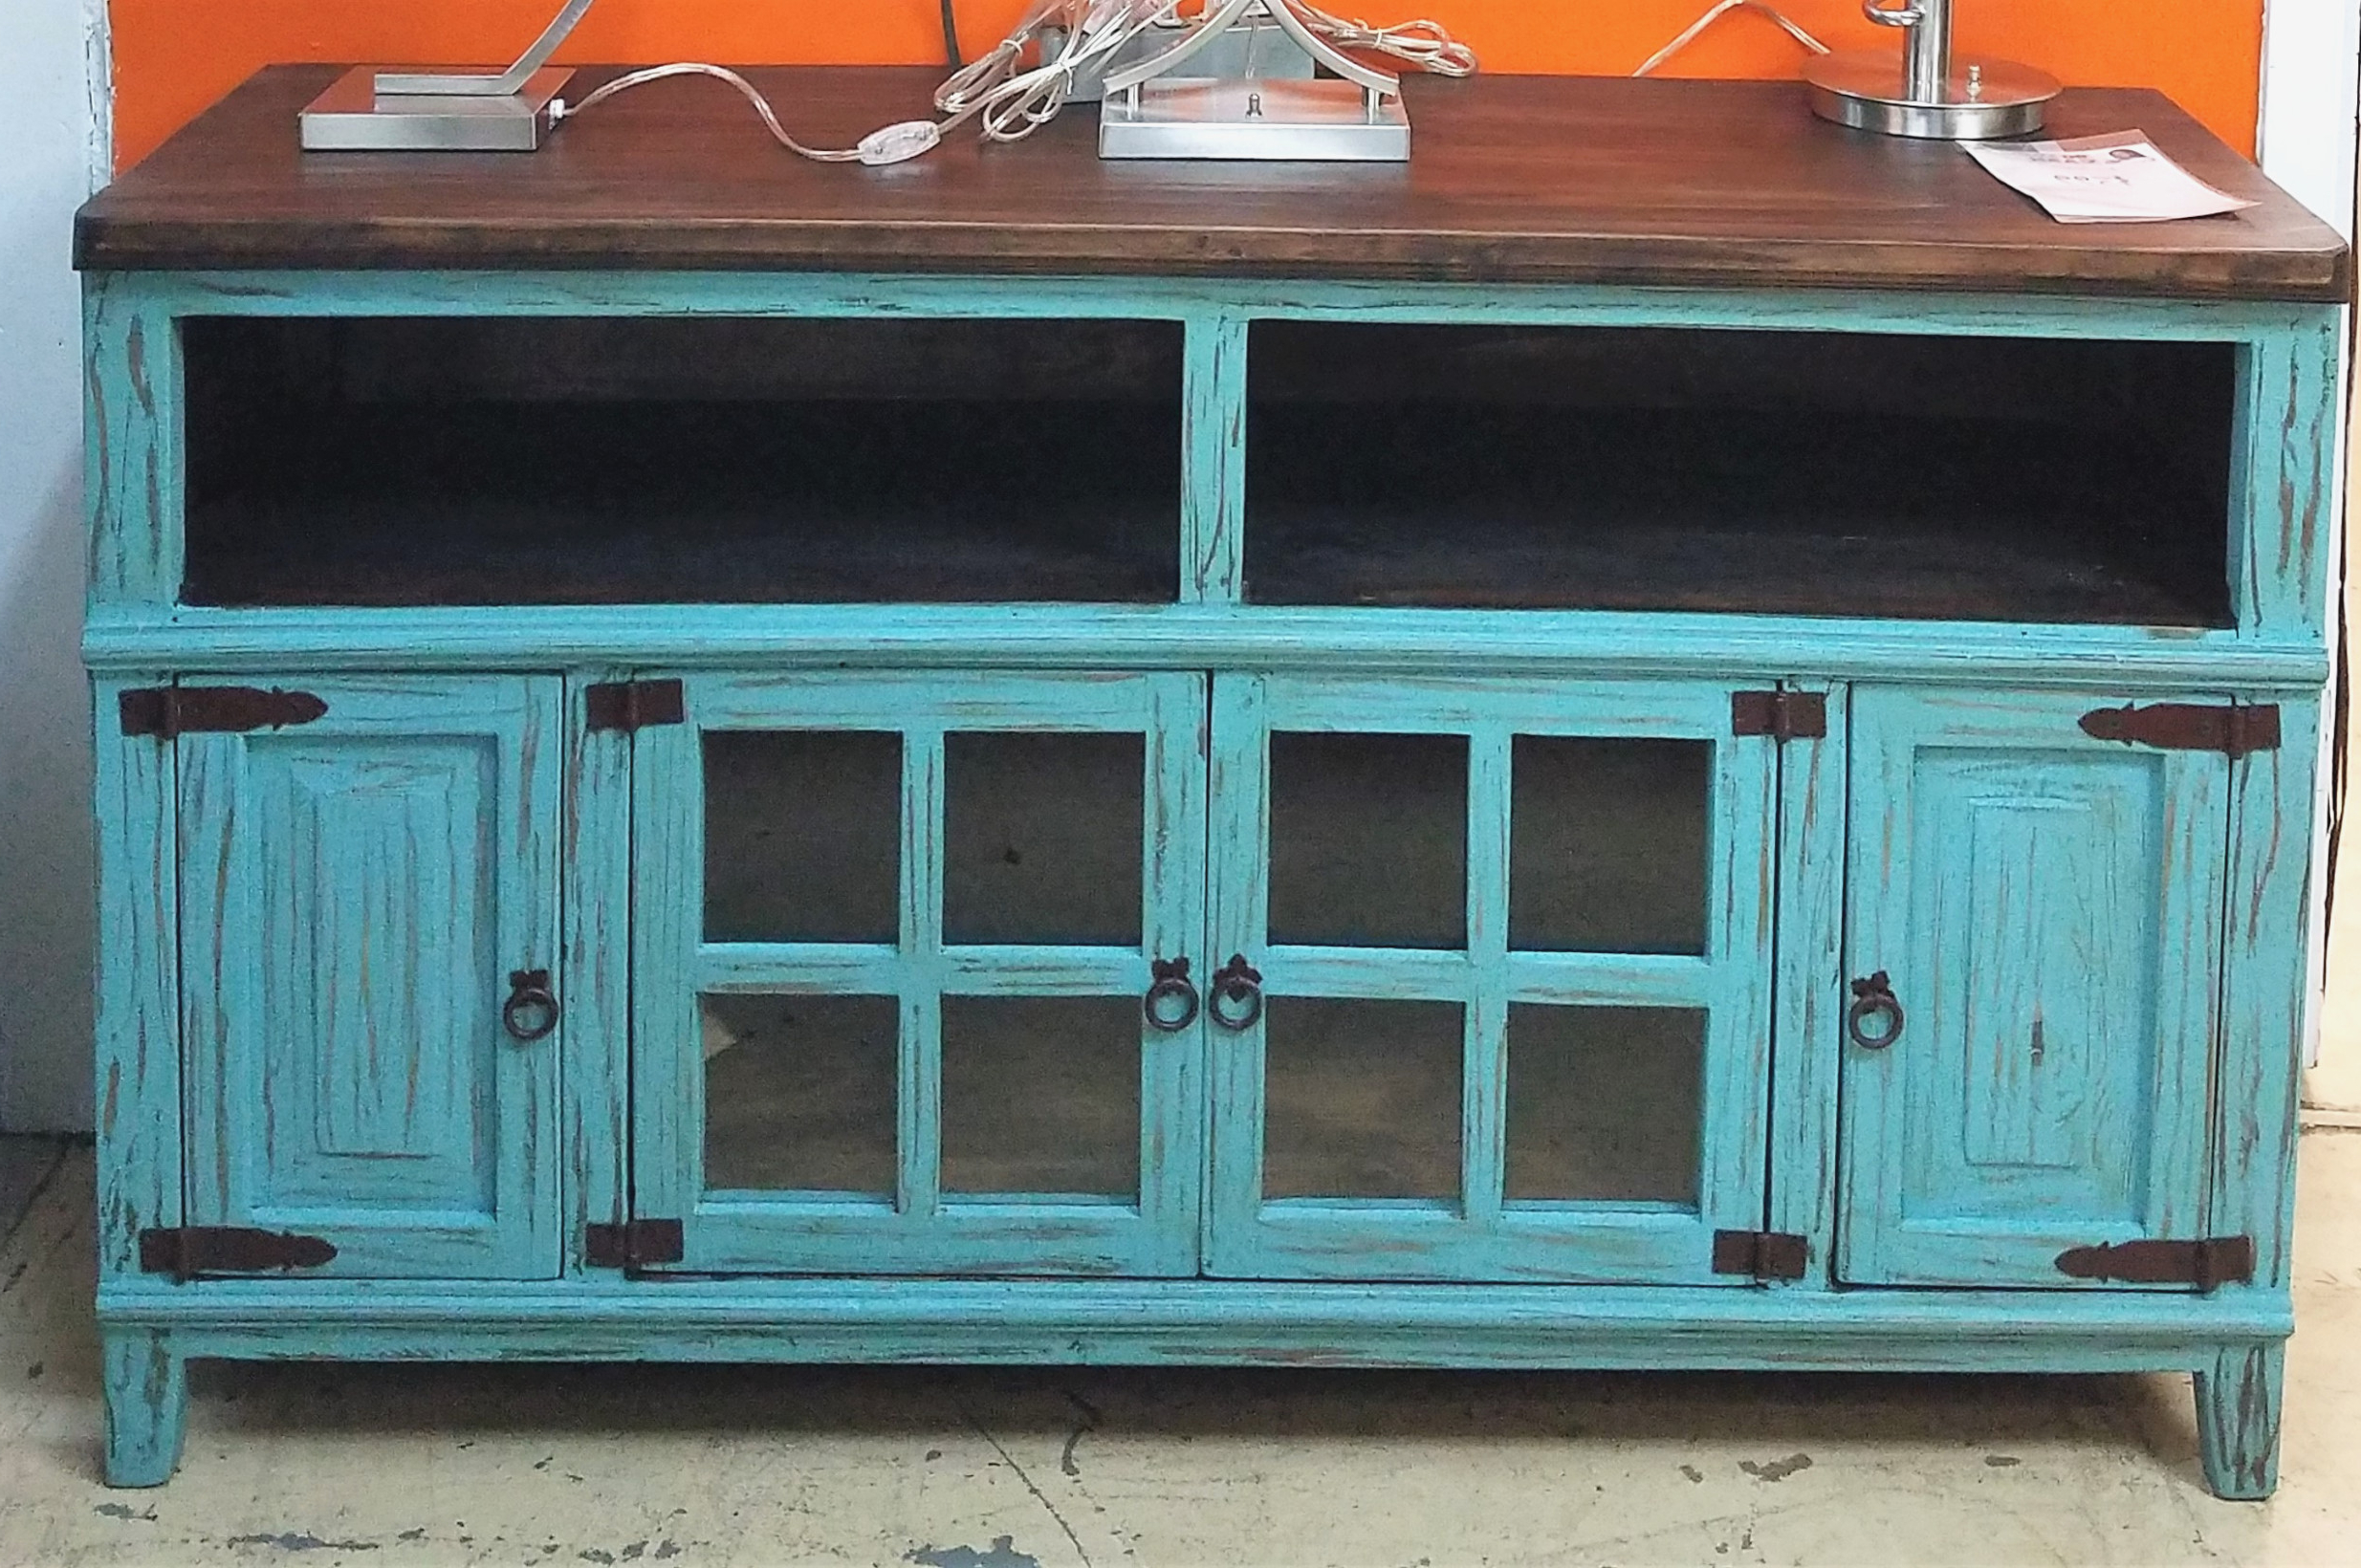 Blue Tv Stands Within Most Recent Rustic Blue Tv Stand Stands Cabinet Fireplace Best Buy – Buyouapp (View 7 of 20)